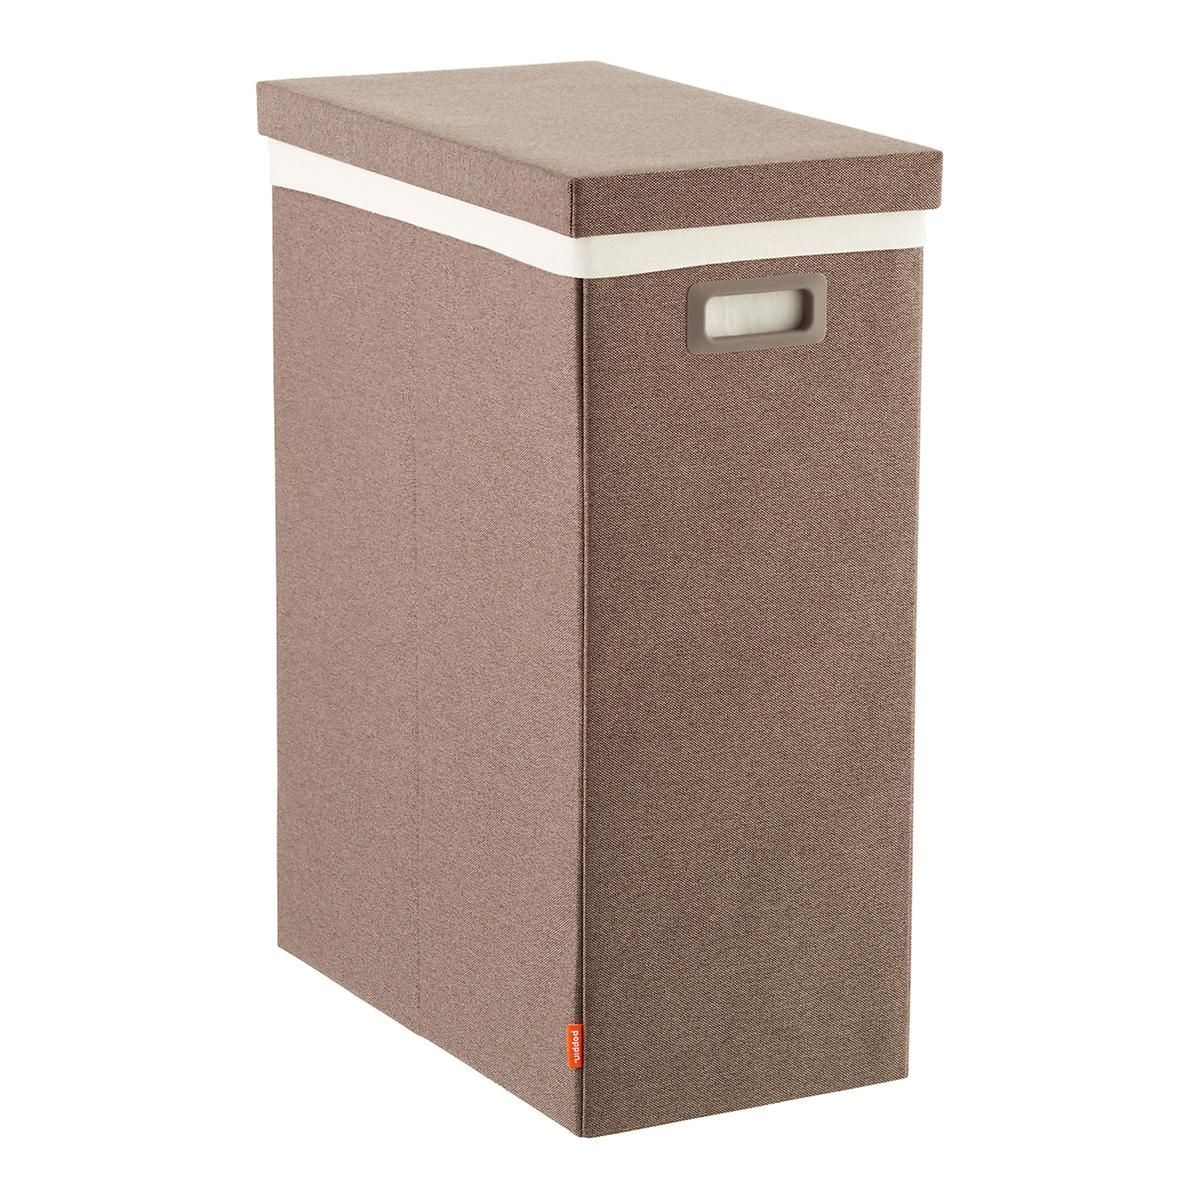 Heather Brown Poppin Laundry Hamper with Lid